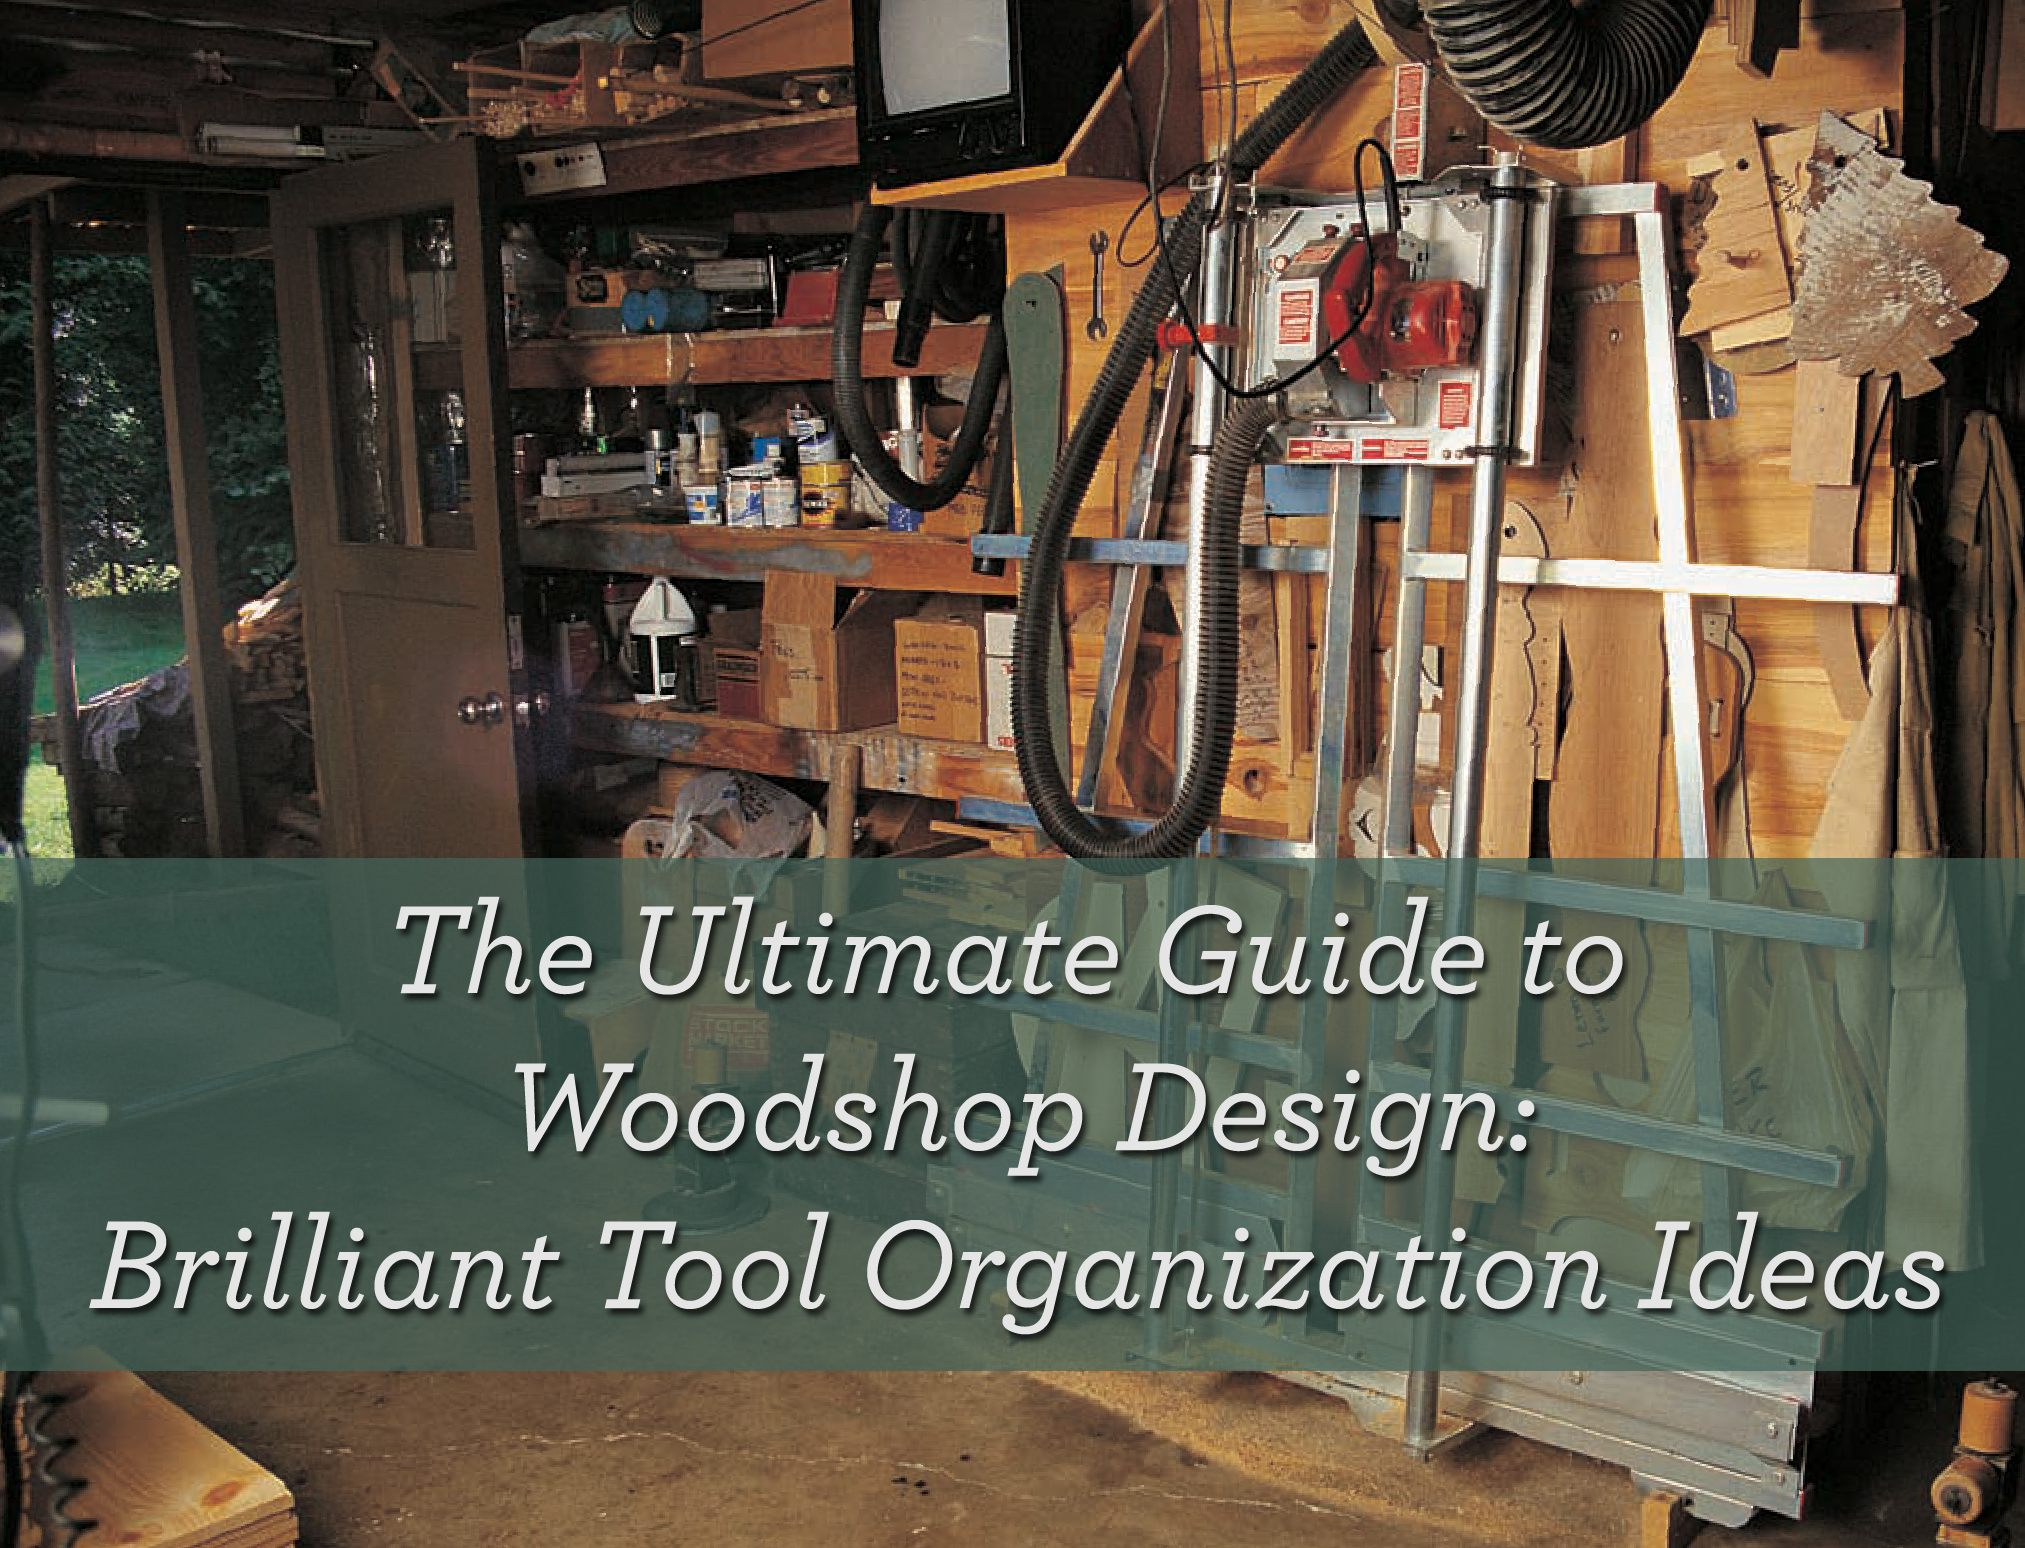 How to Buy Cheap Tools & Design a Woodshop Like a Pro